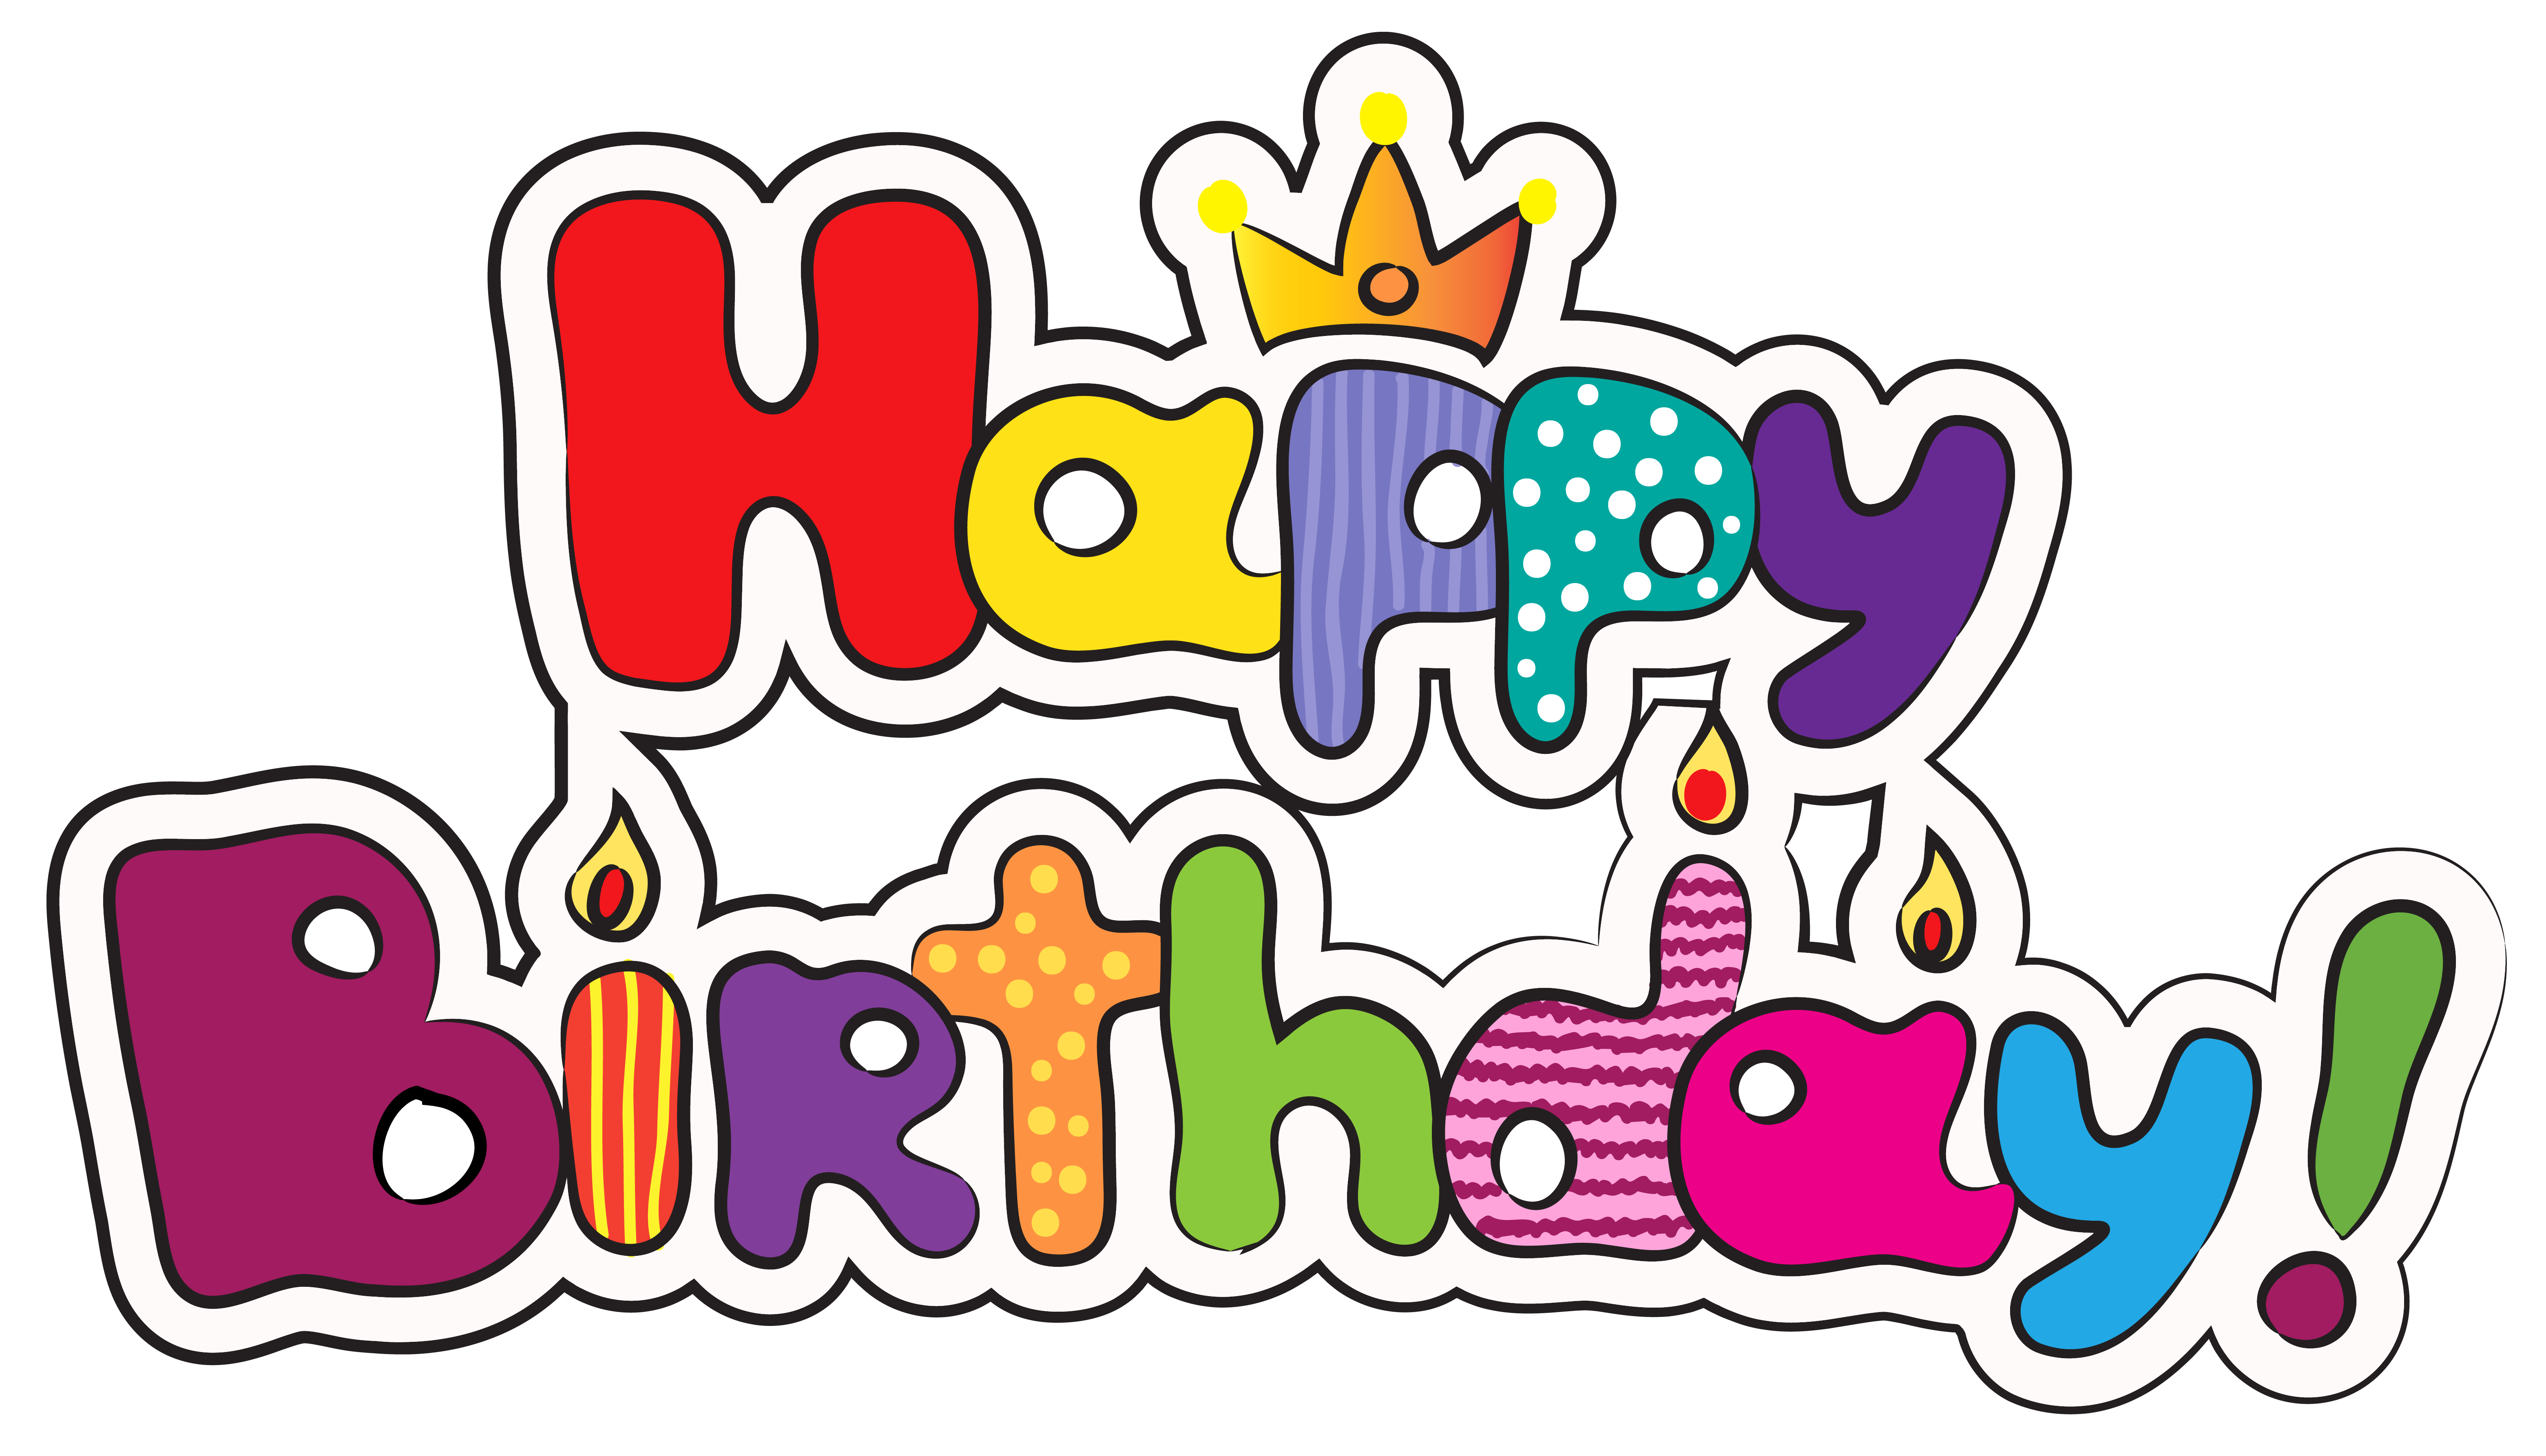 Snoopy birthday png. Colorful happy clipart image